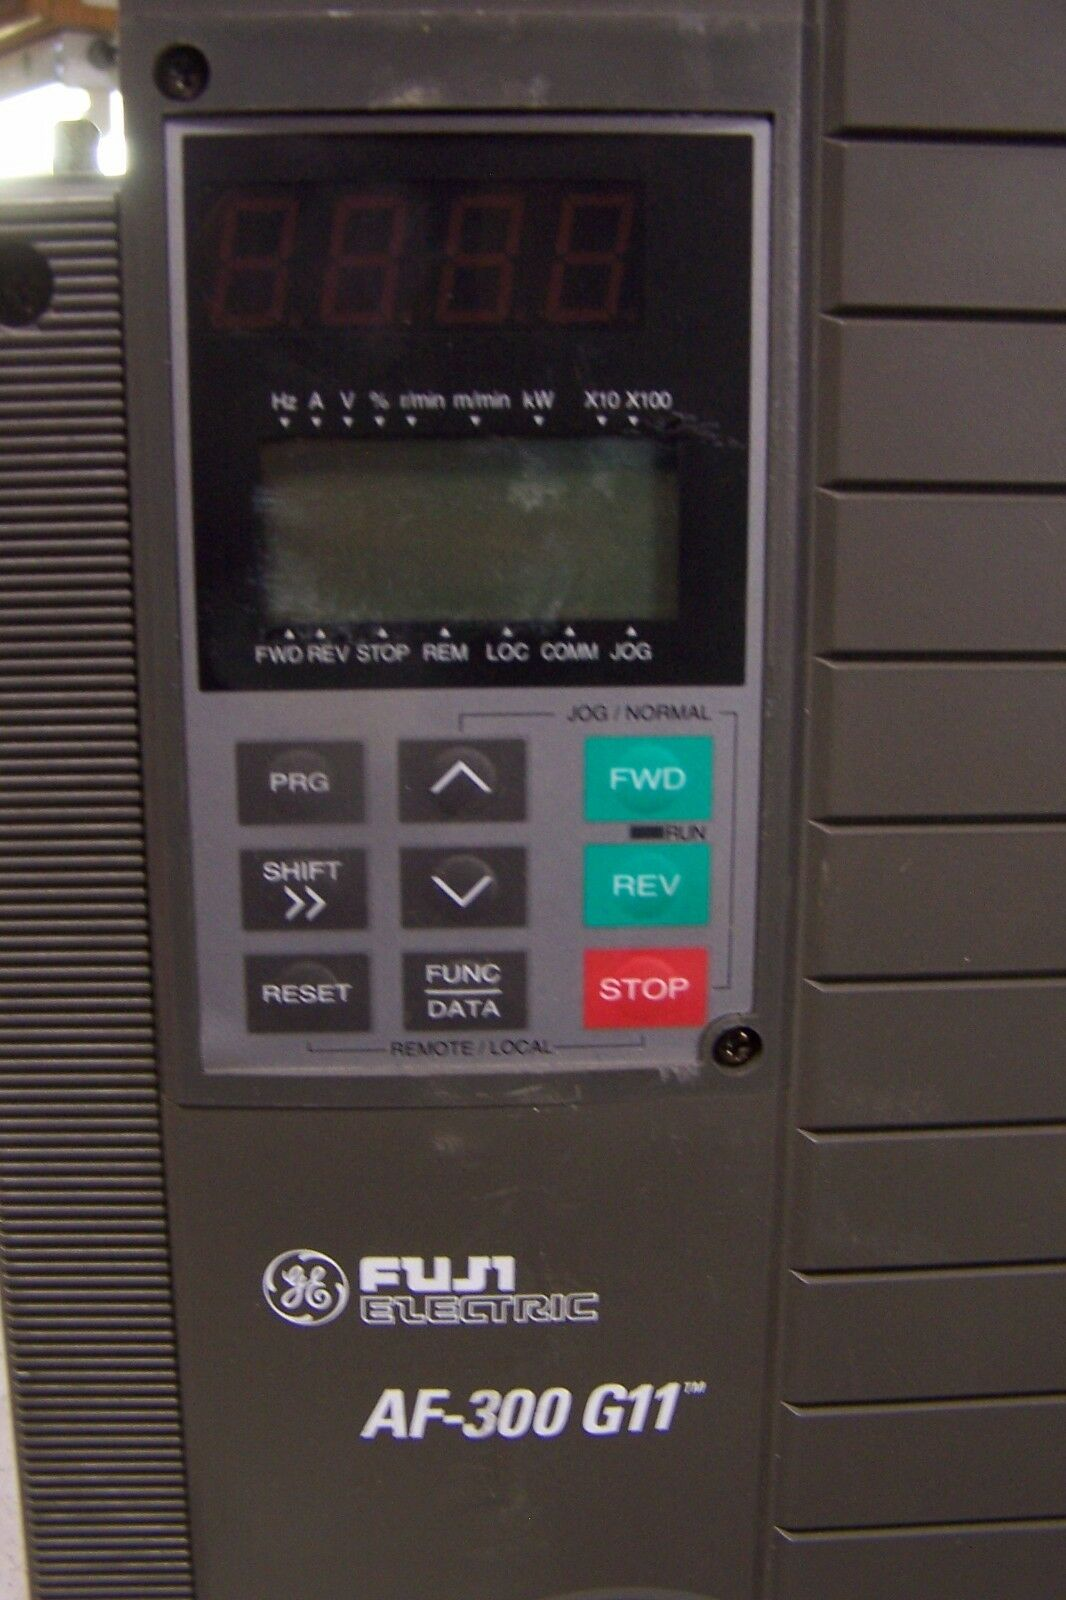 GE Fuji Electric AF-300 G11 6KG1143007X1B1 Variable Frequency Drive 7.5 HP